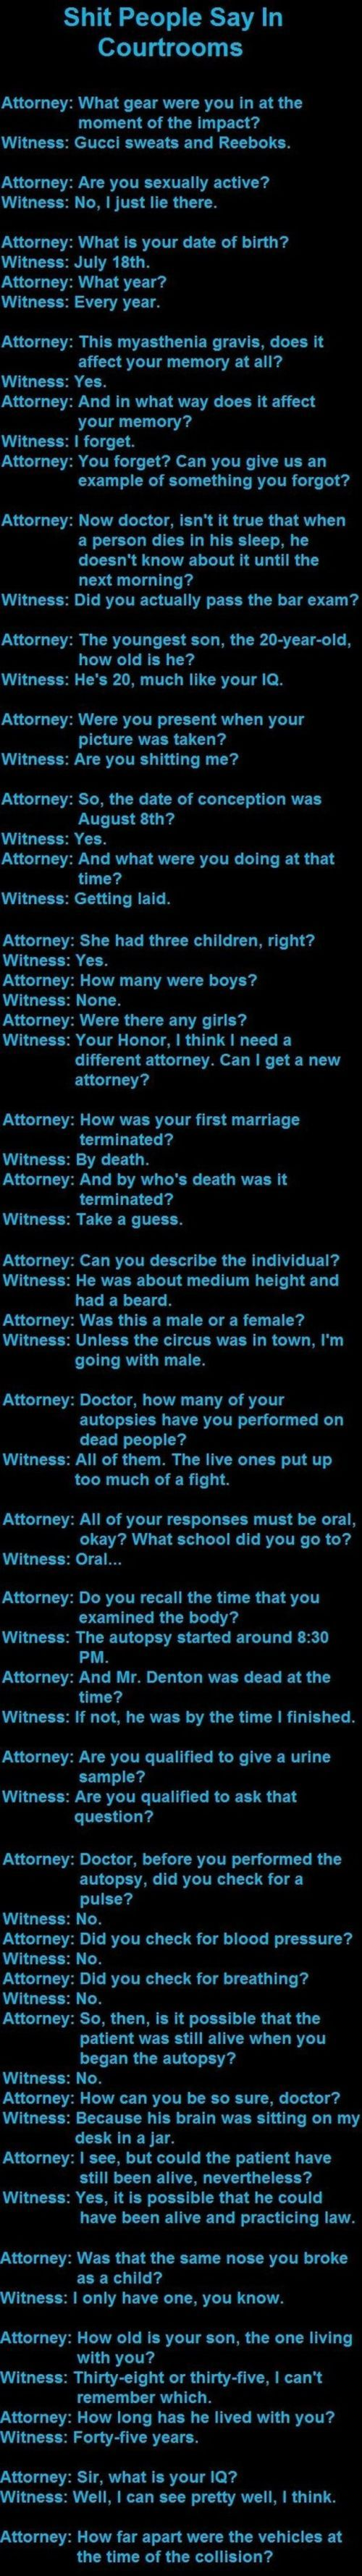 sh*t people say in courtrooms